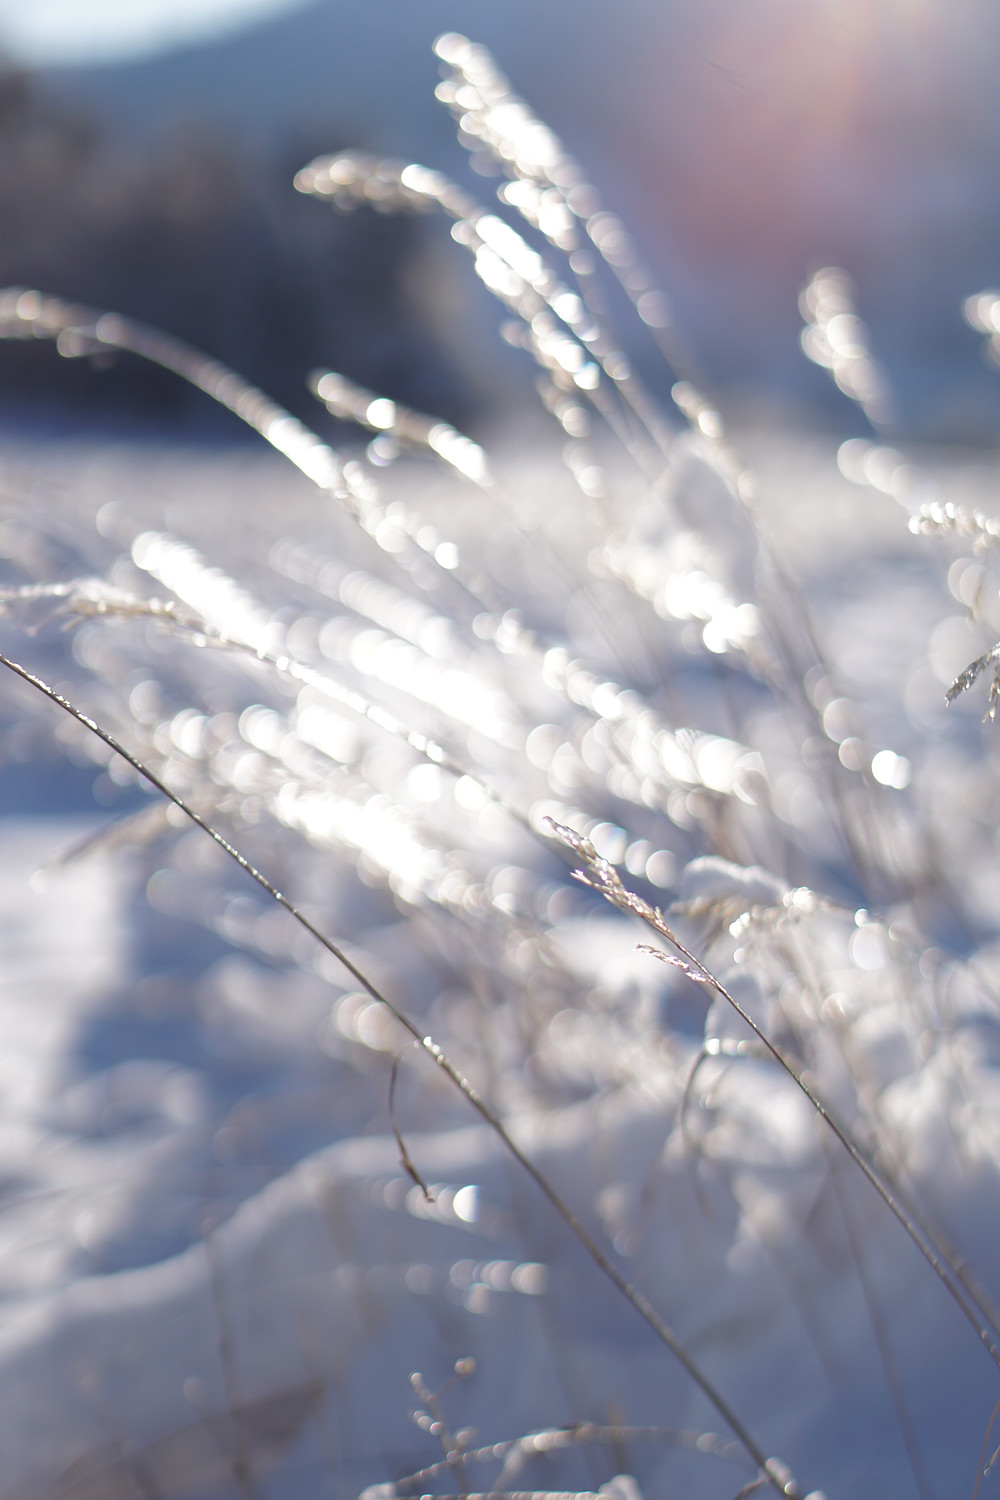 bokeh shallow depth of field snowy field sparkles